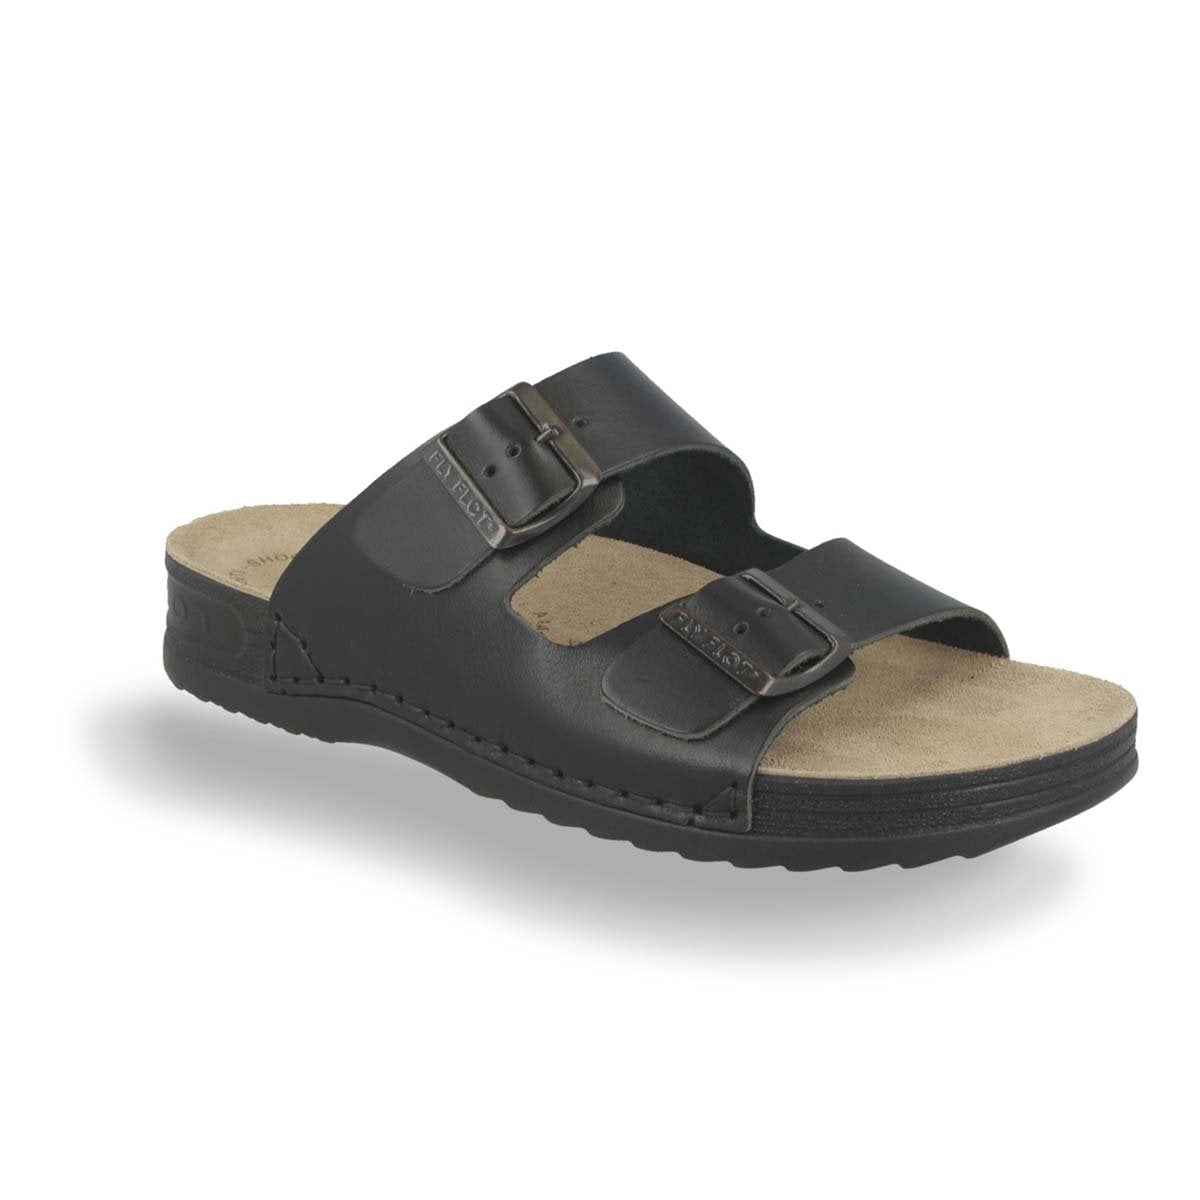 Photo of the Leather Man Slipper Black (40035xv)